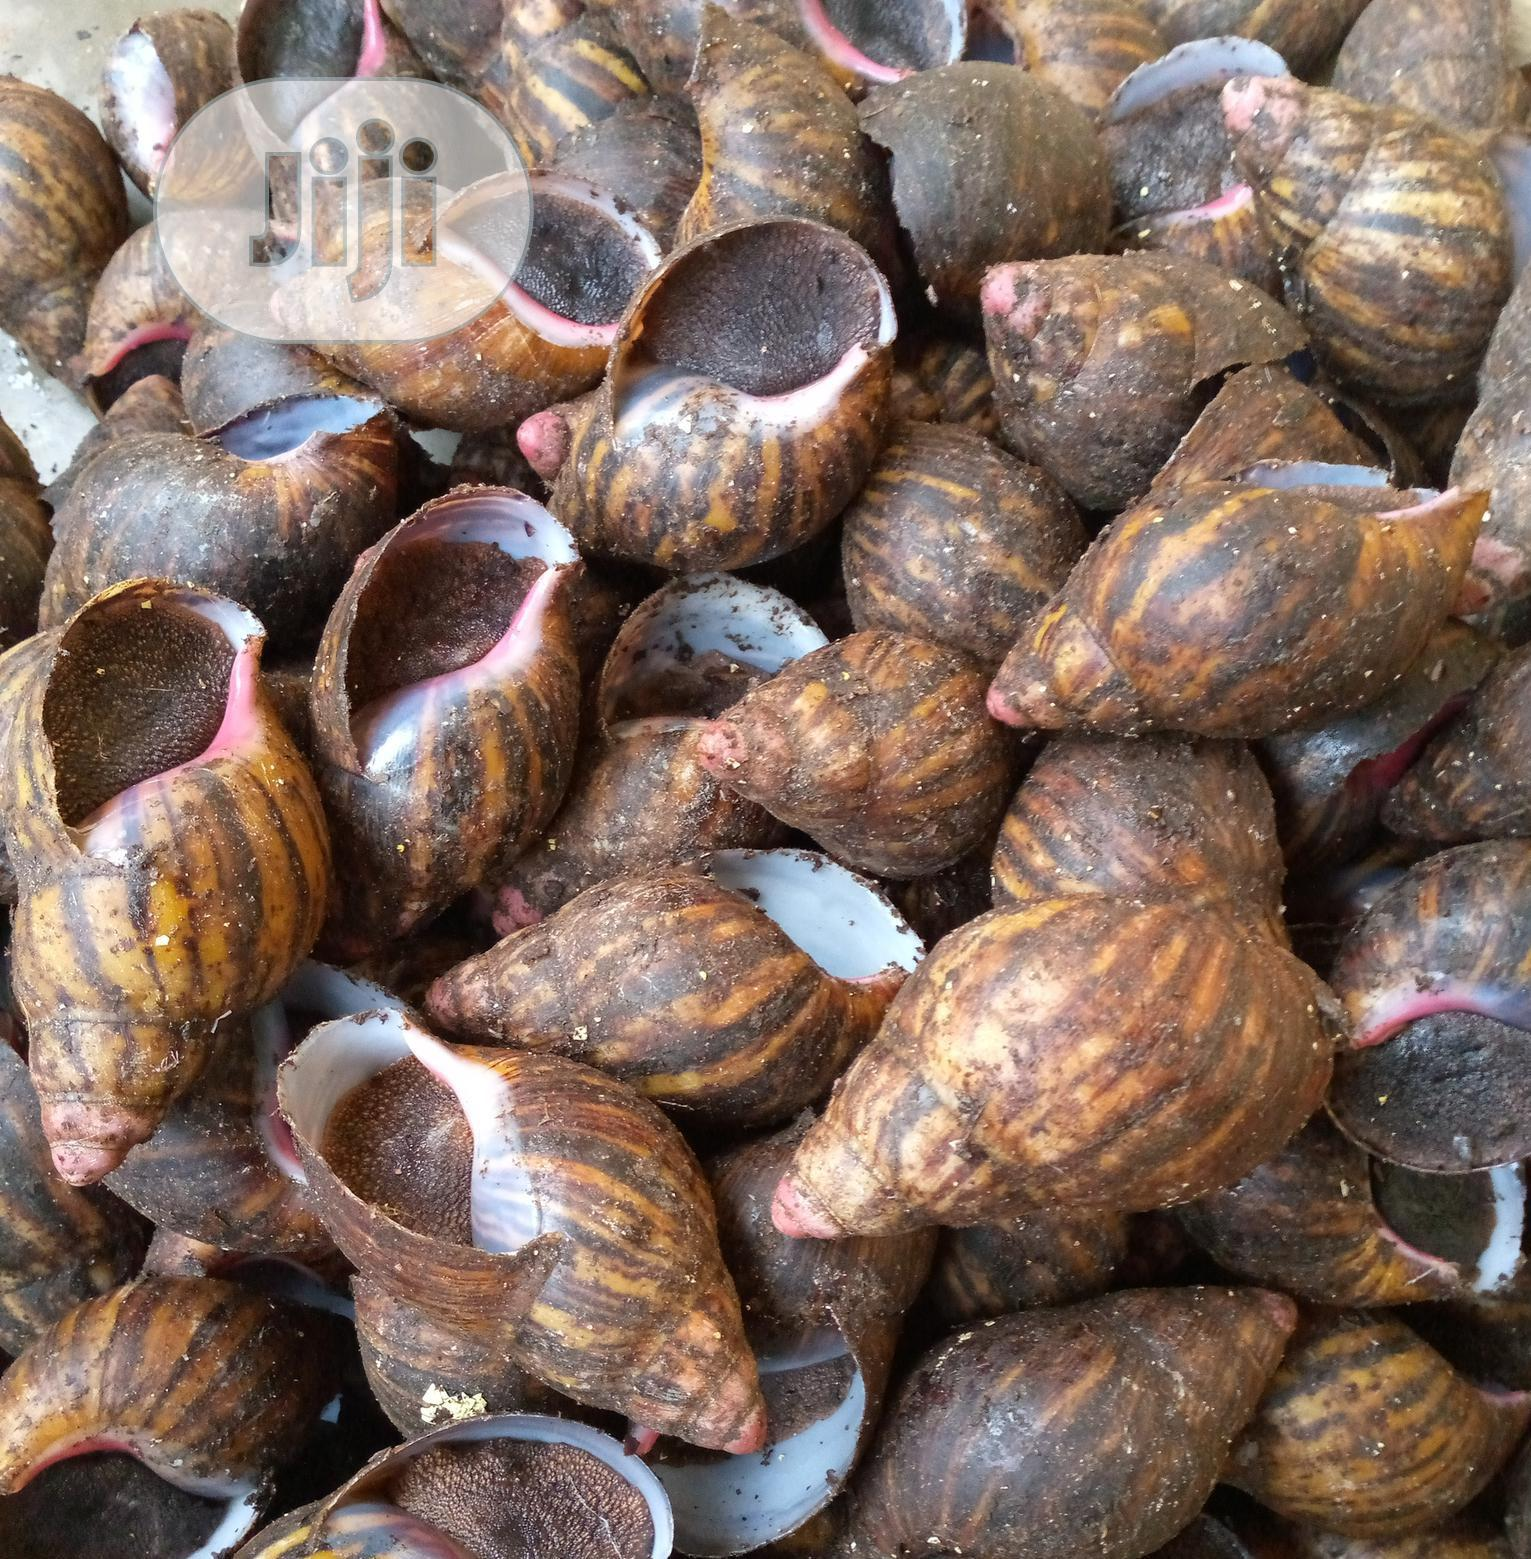 Large Snail Selling   Other Animals for sale in Udu, Delta State, Nigeria